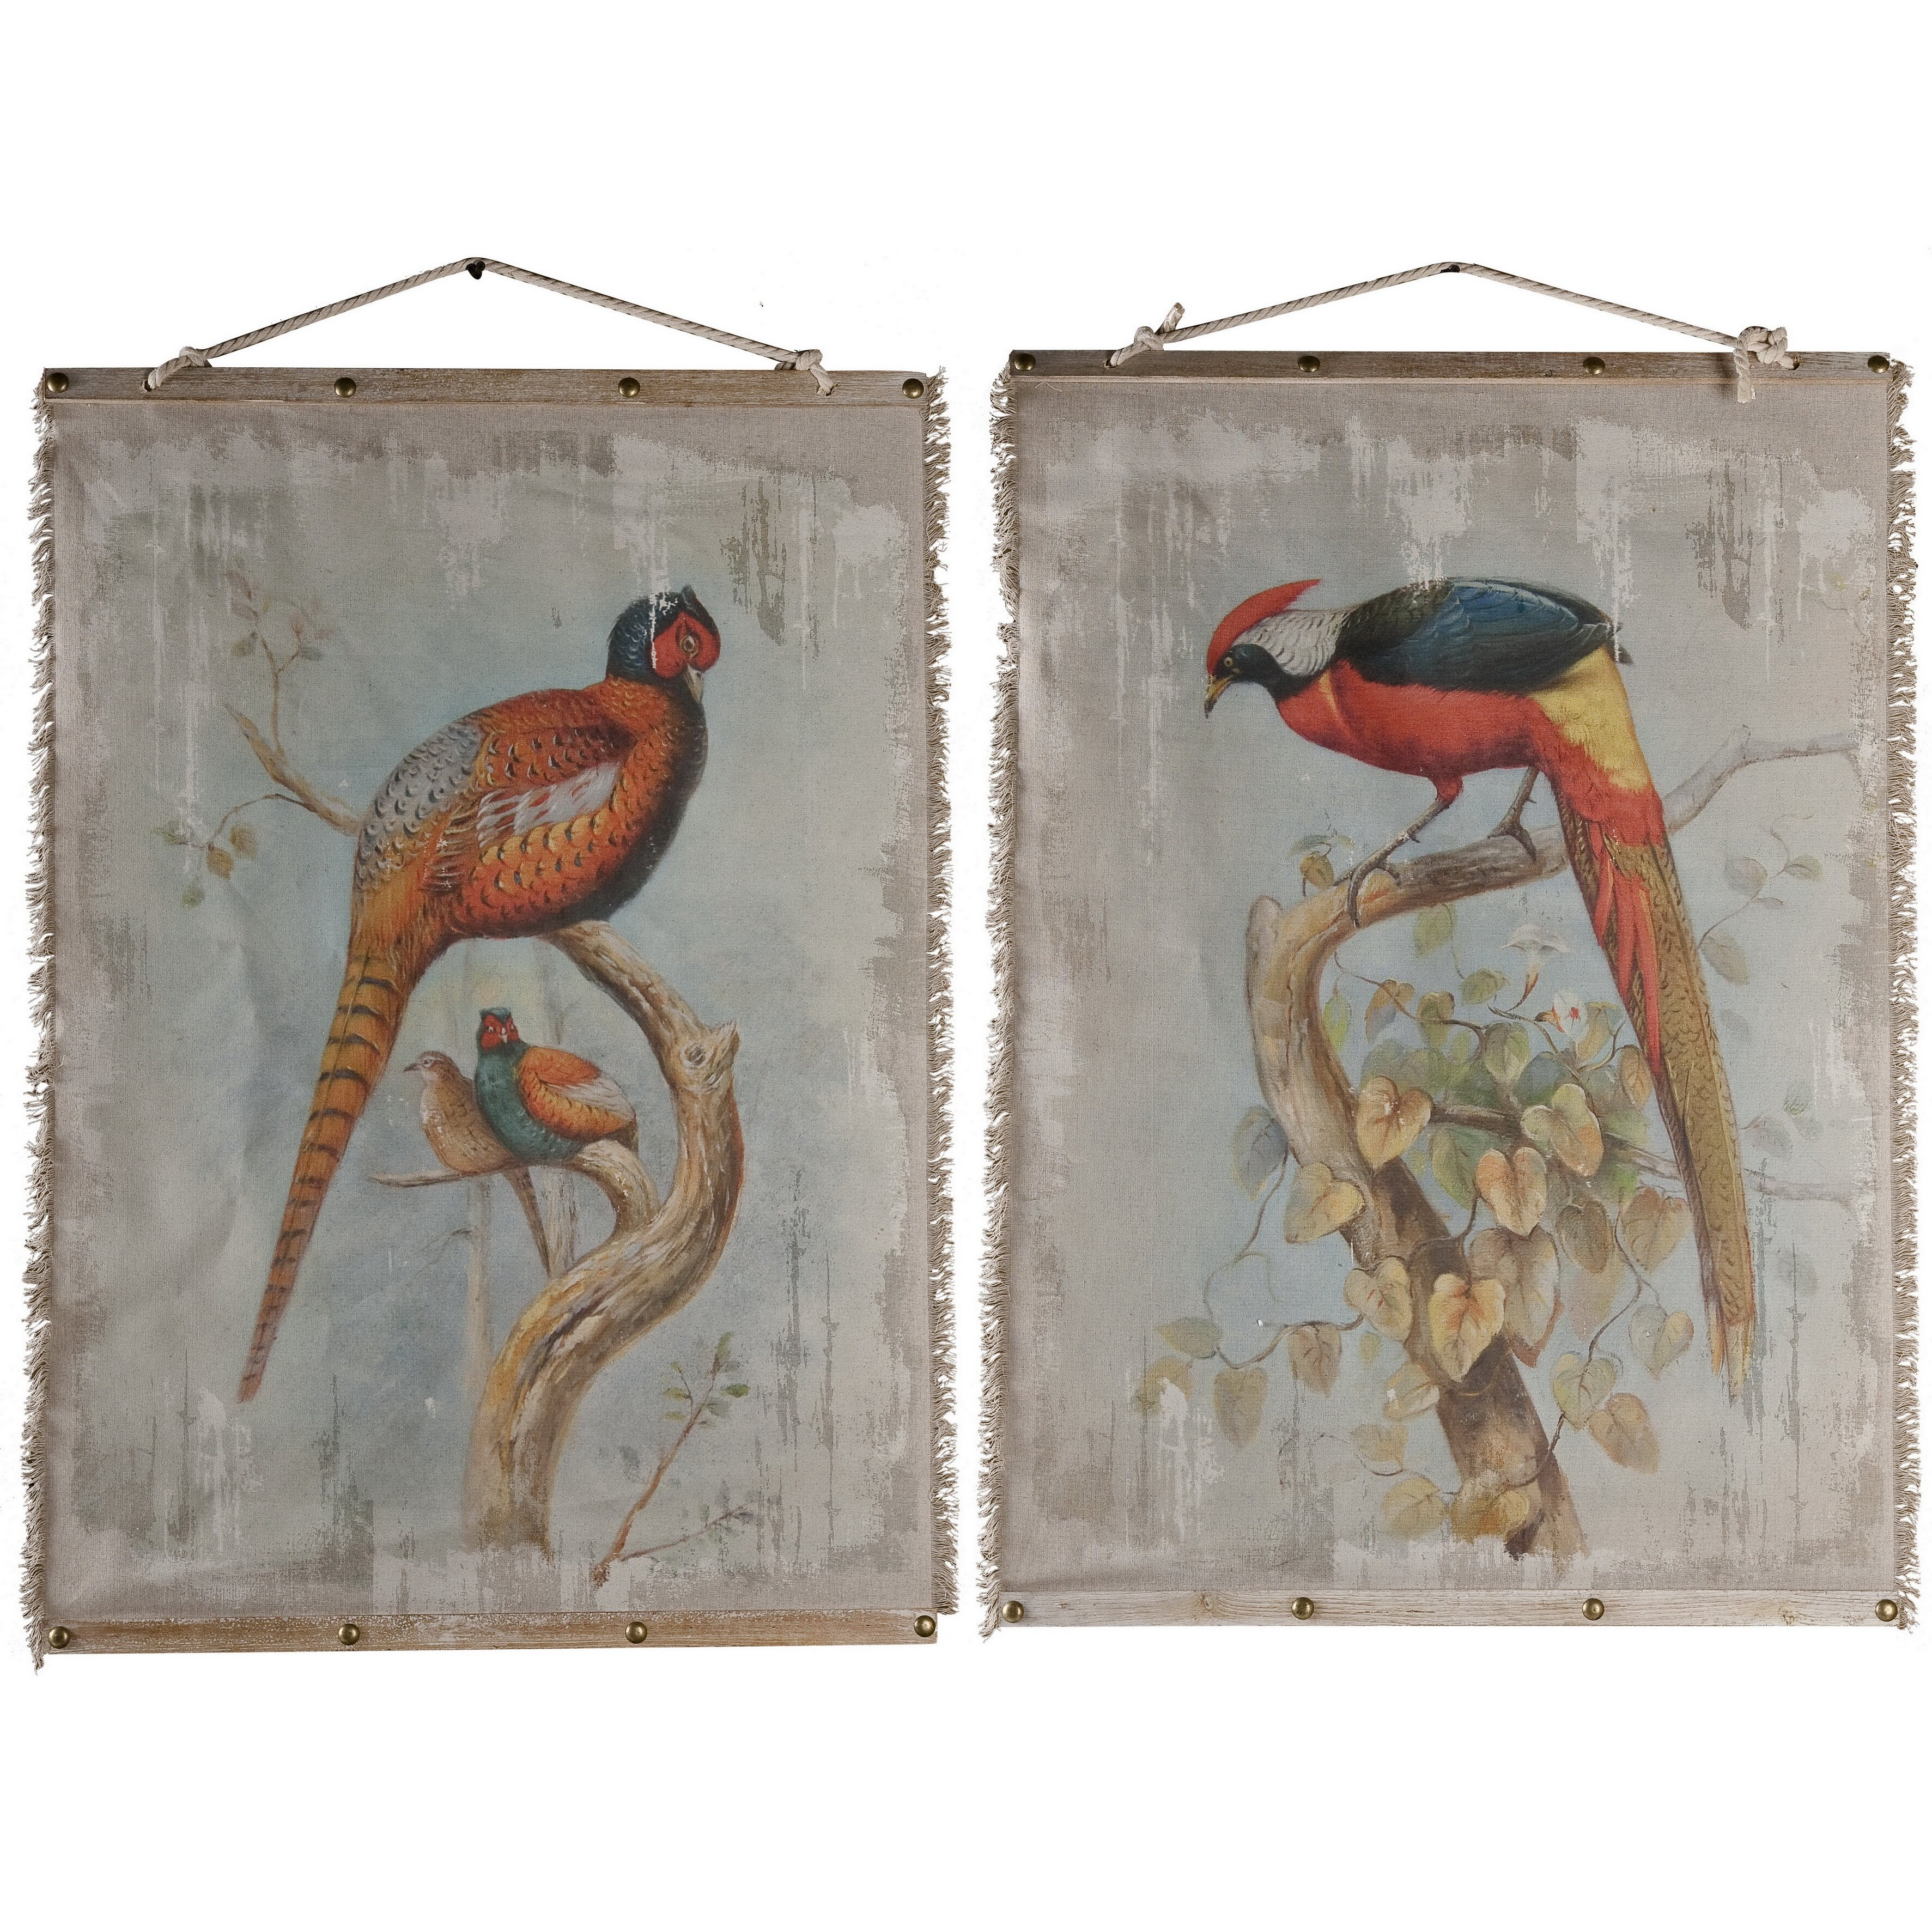 Home Oiseau Wall Decor 2 Piece Graphic Art Set Reviews Wayfair